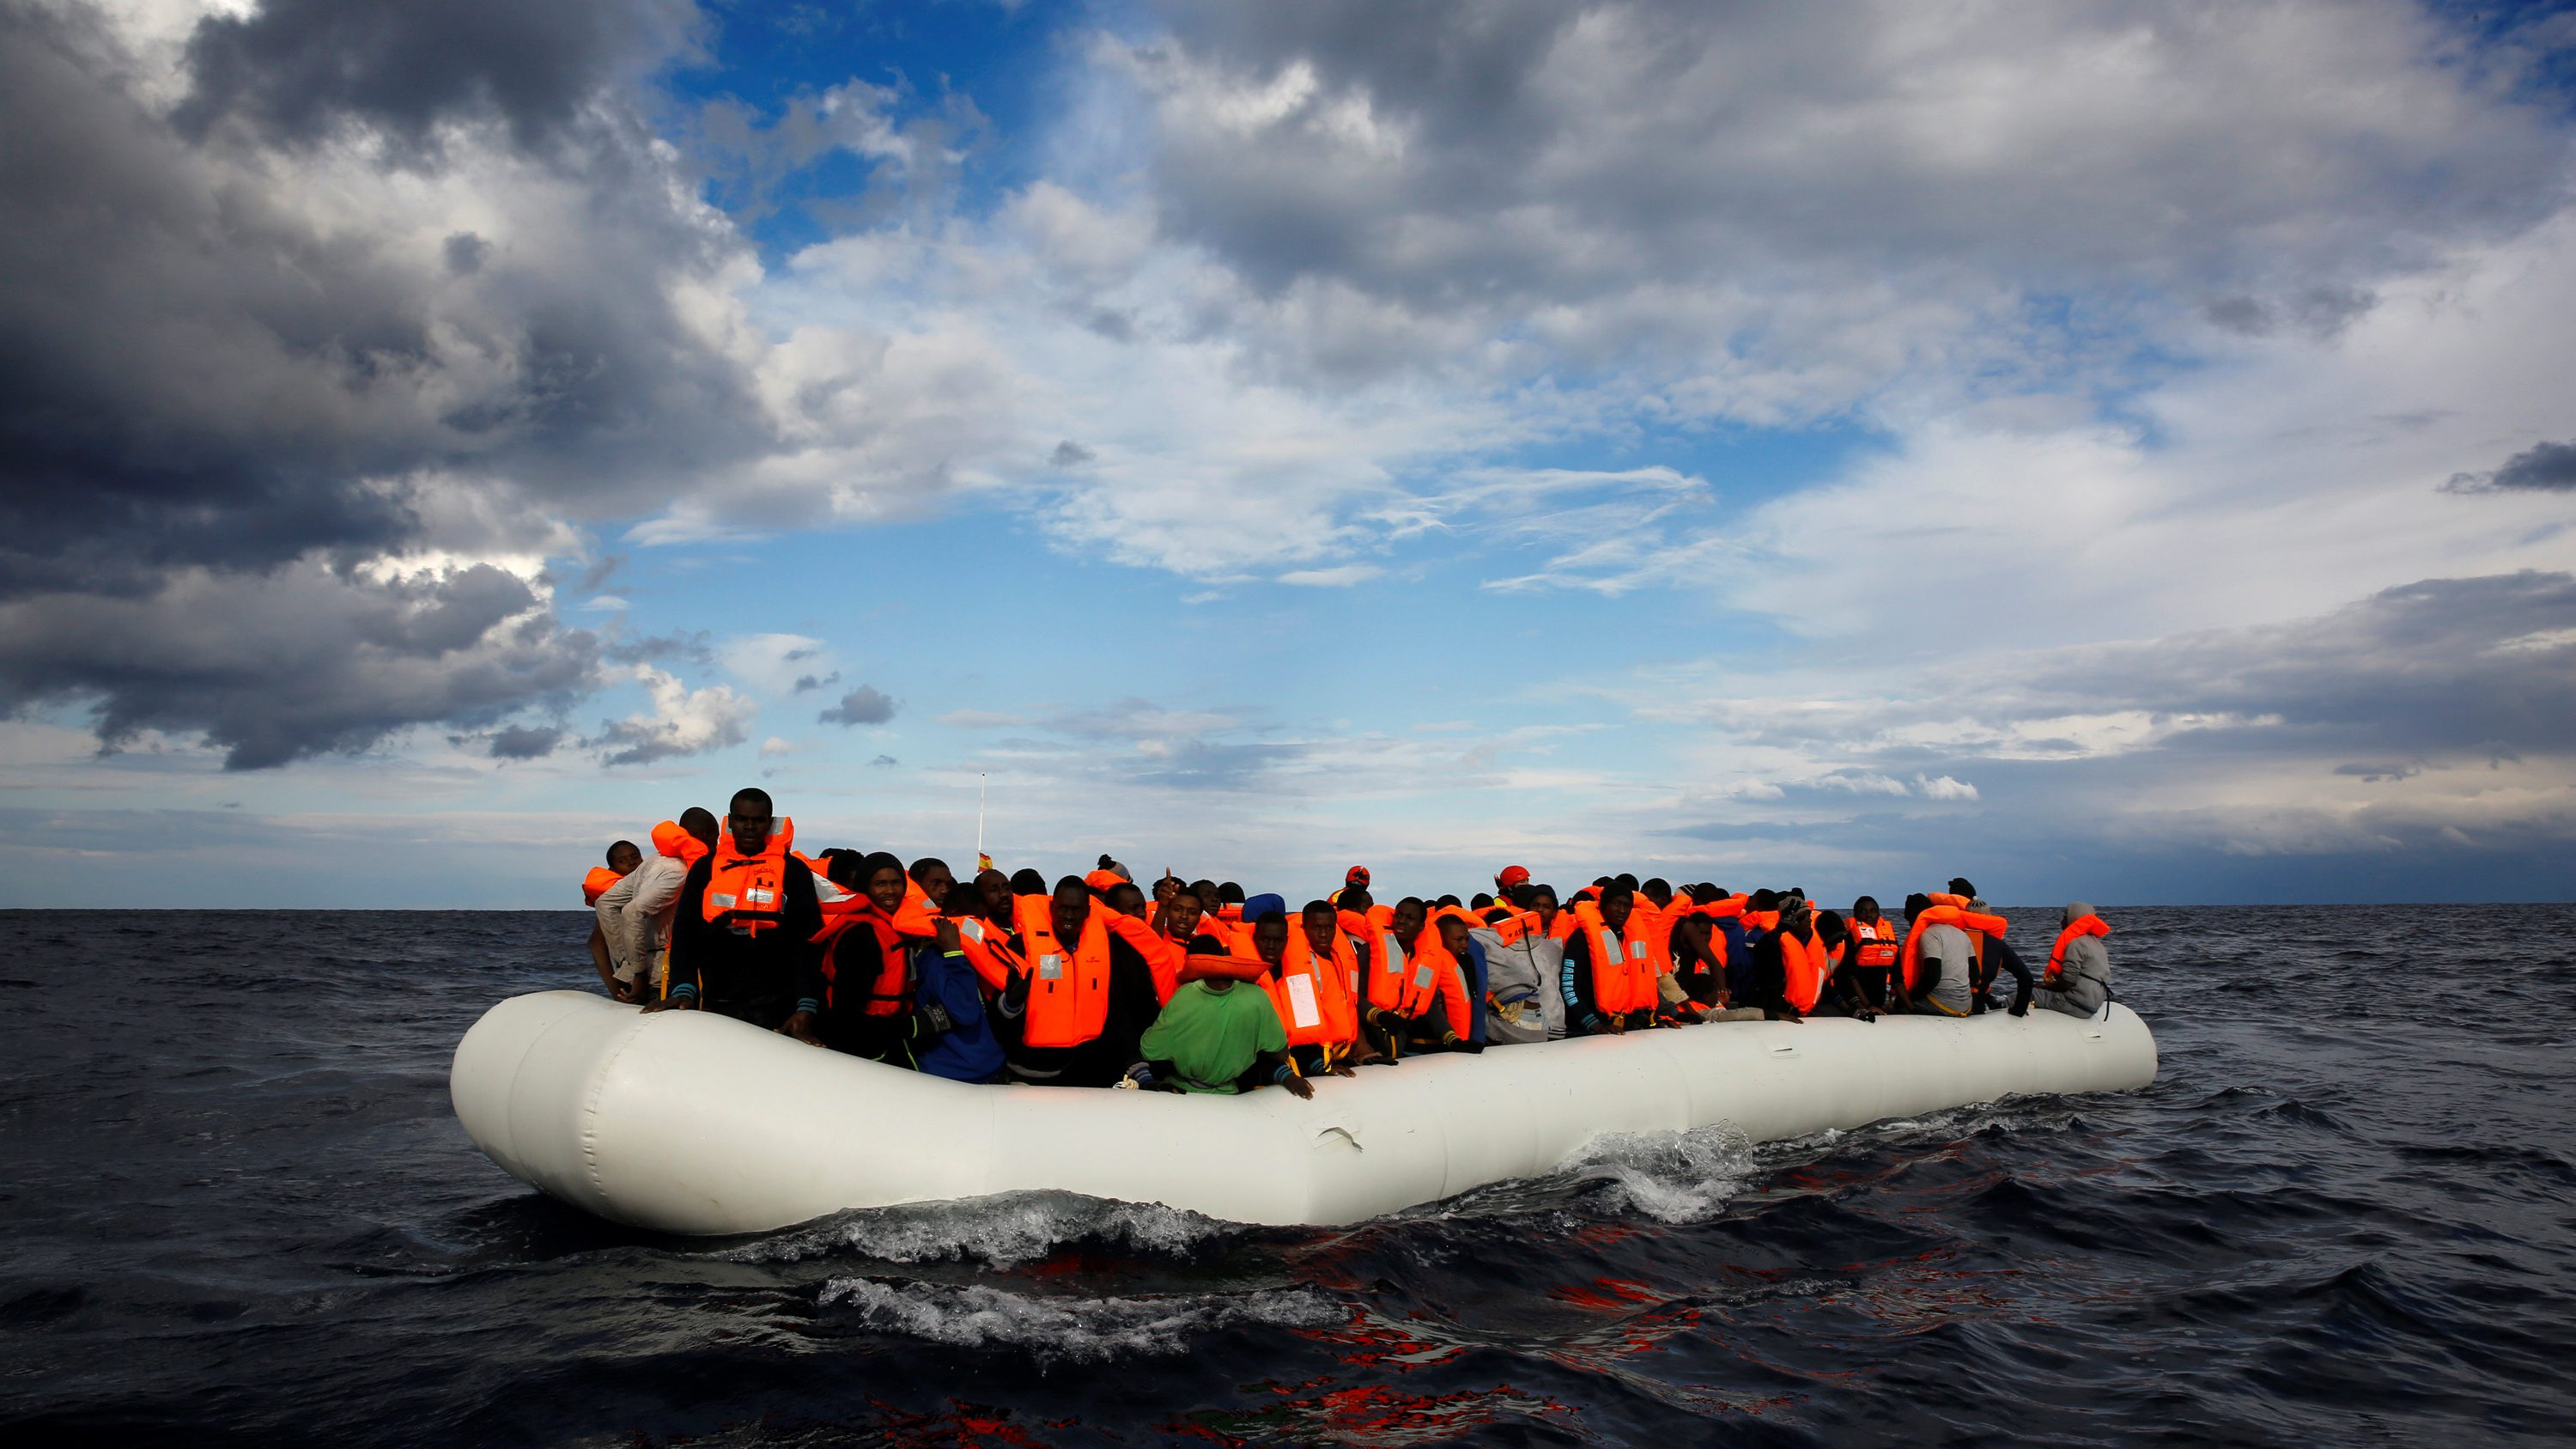 An overcrowded raft drifts out of control in the central Mediterranean Sea